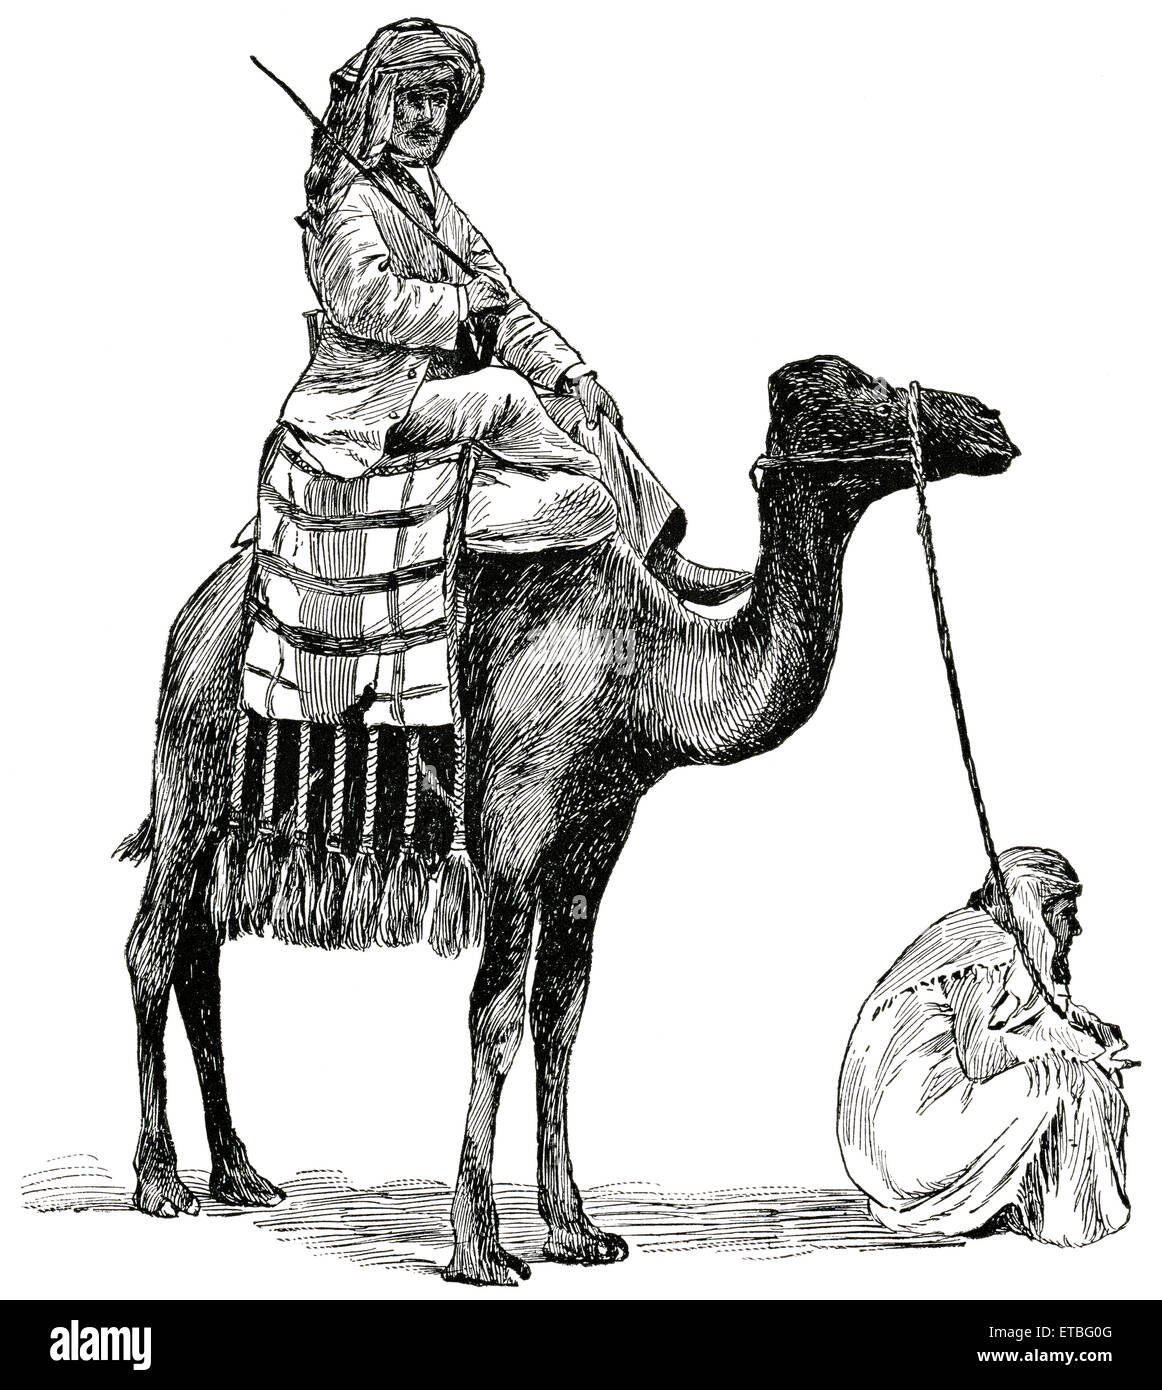 Two Men with Camel, Aden, Arabia, 'Classical Portfolio of Primitive Carriers', by Marshall M. Kirman, World - Stock Image